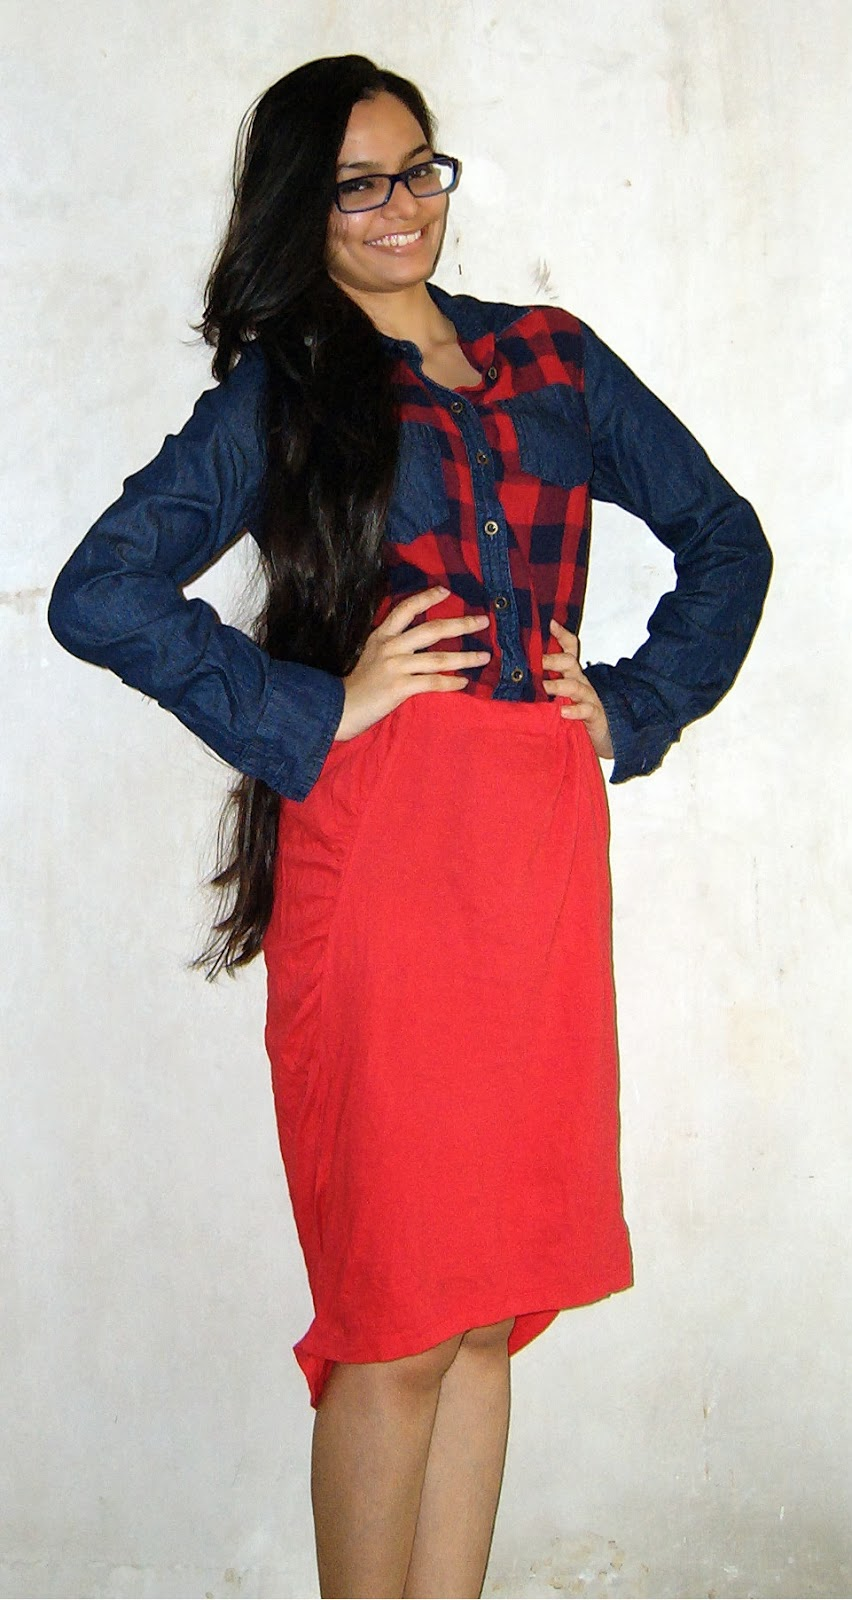 tartan shirt, red skirt, street shopping, colaba causeway shopping, what to buy at colaba causeway, streetstyle mumbai